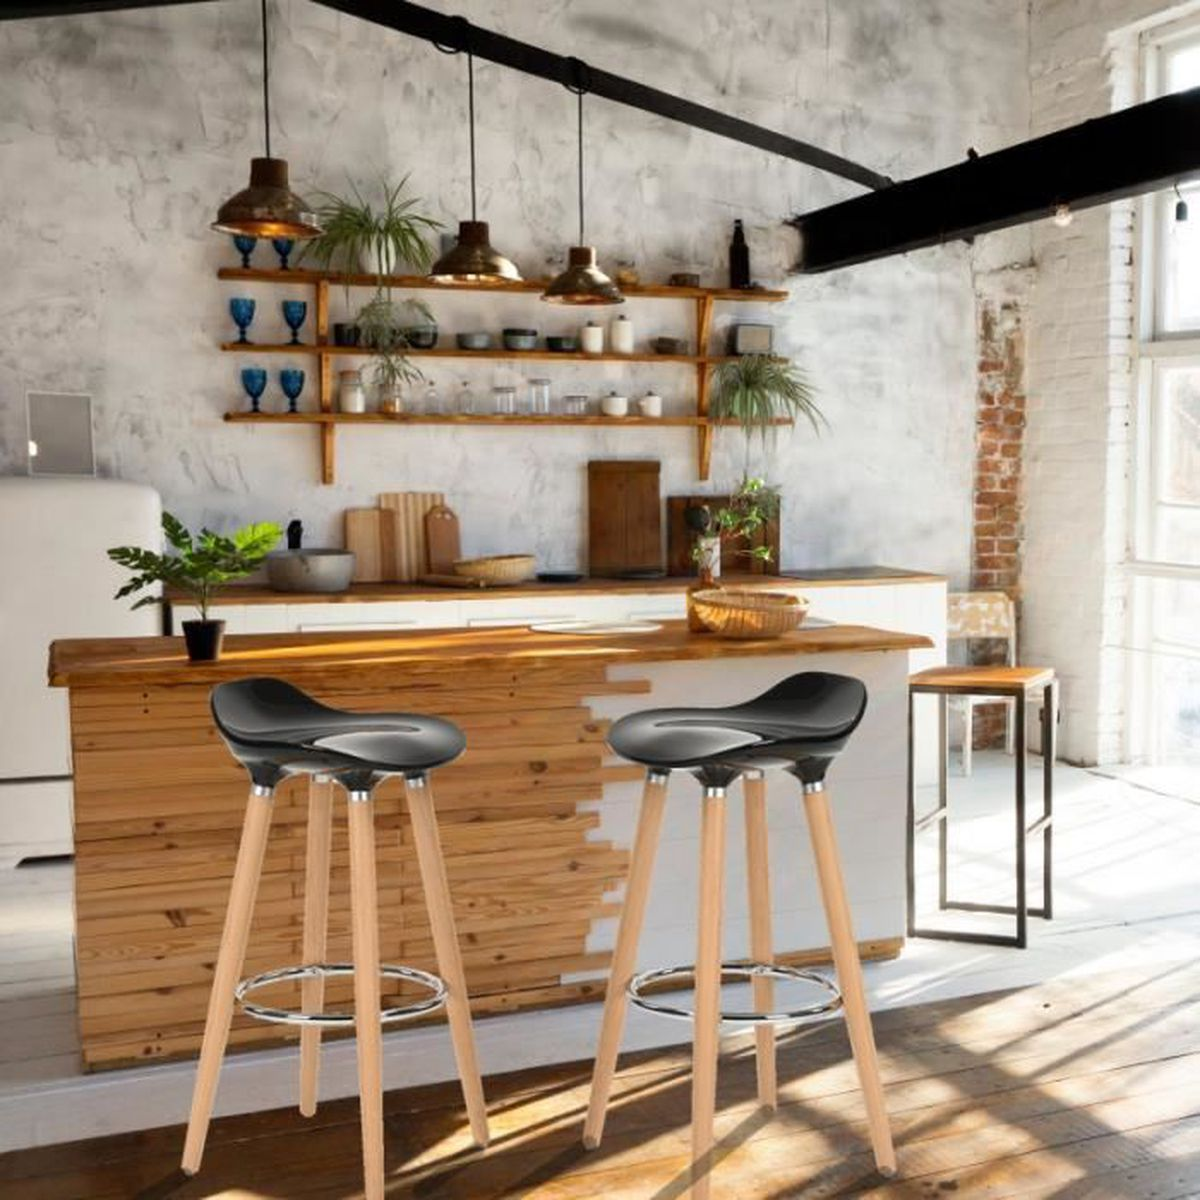 furniturer lot de 2 tabourets de bar cuisine scandinaves chaises de bar haute avec repose pieds. Black Bedroom Furniture Sets. Home Design Ideas